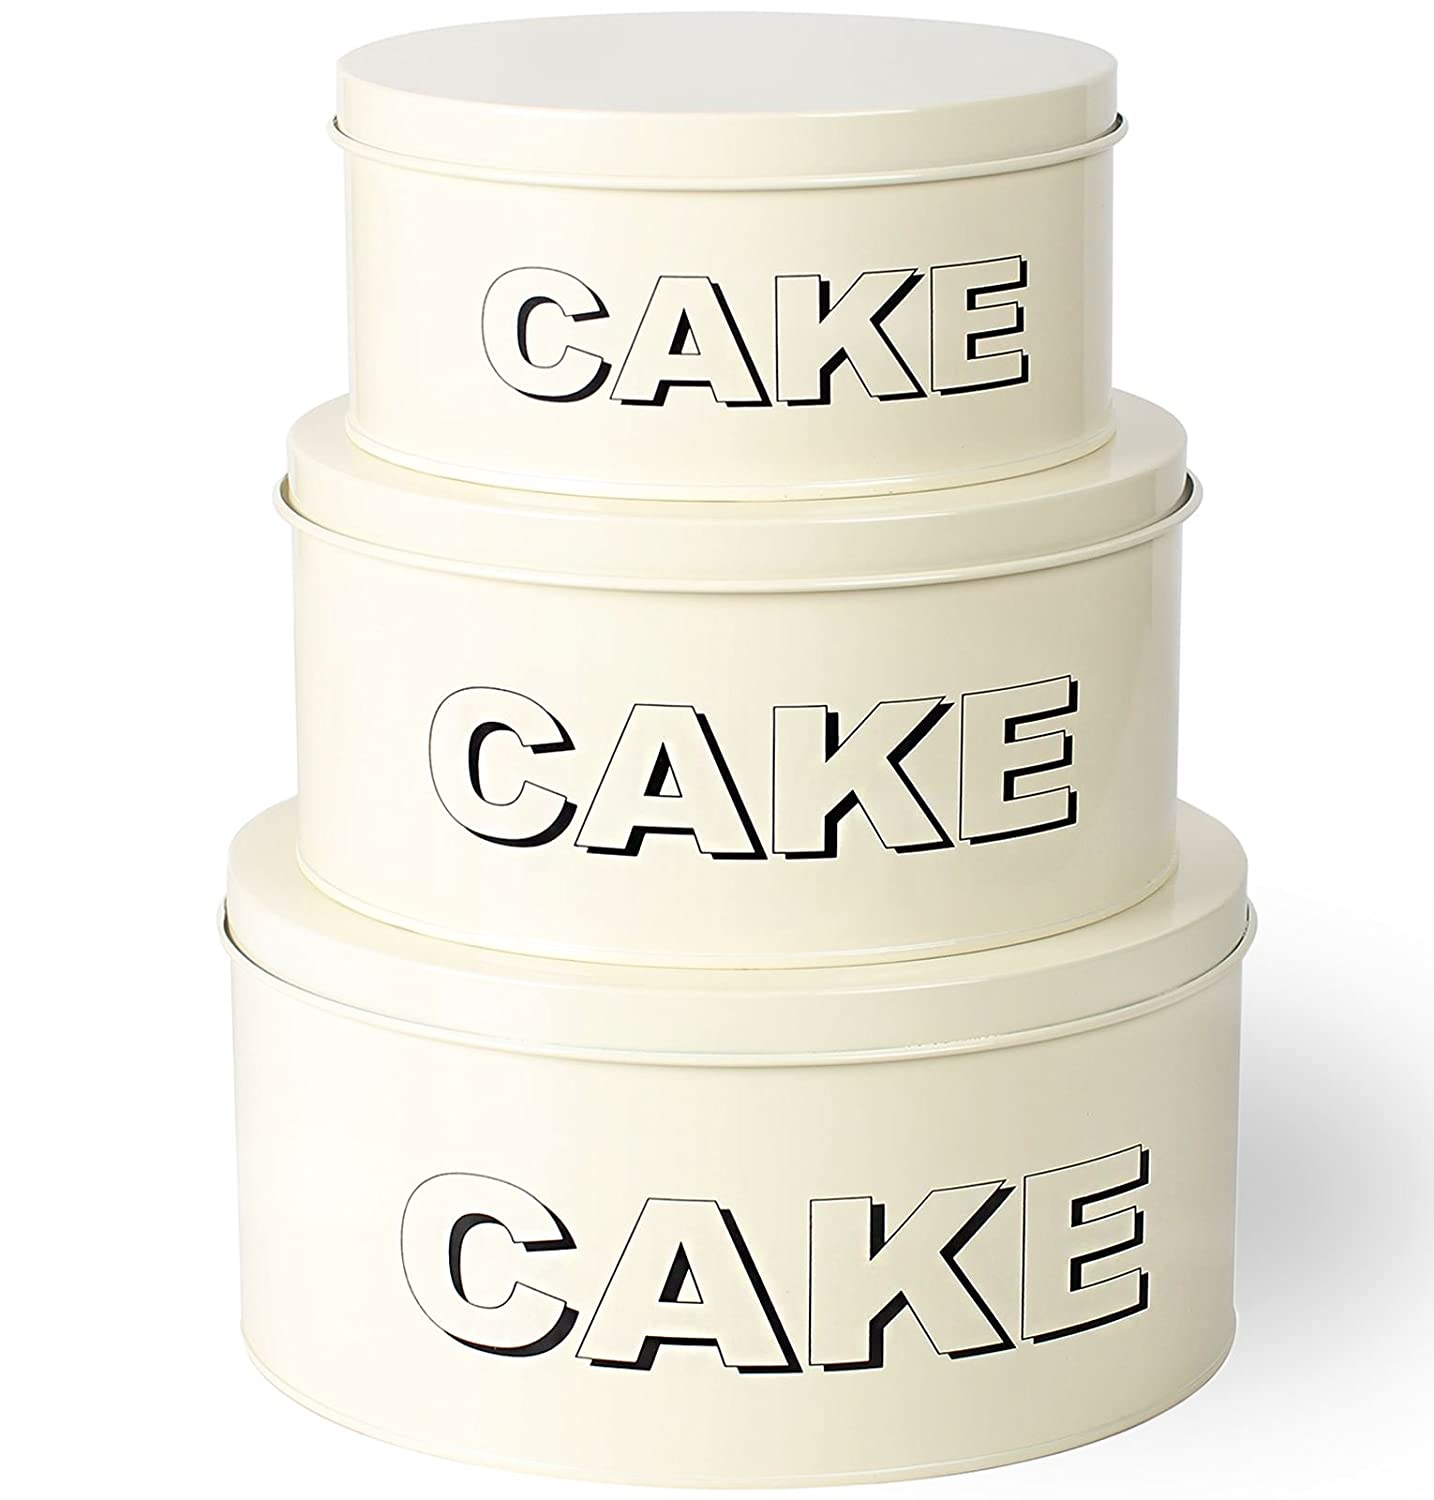 3 Piece Set Shabby Chic Metal Cake Muffin Tin Storage Containers Small - Medium - Large Cake Container Set CrazyGadget®